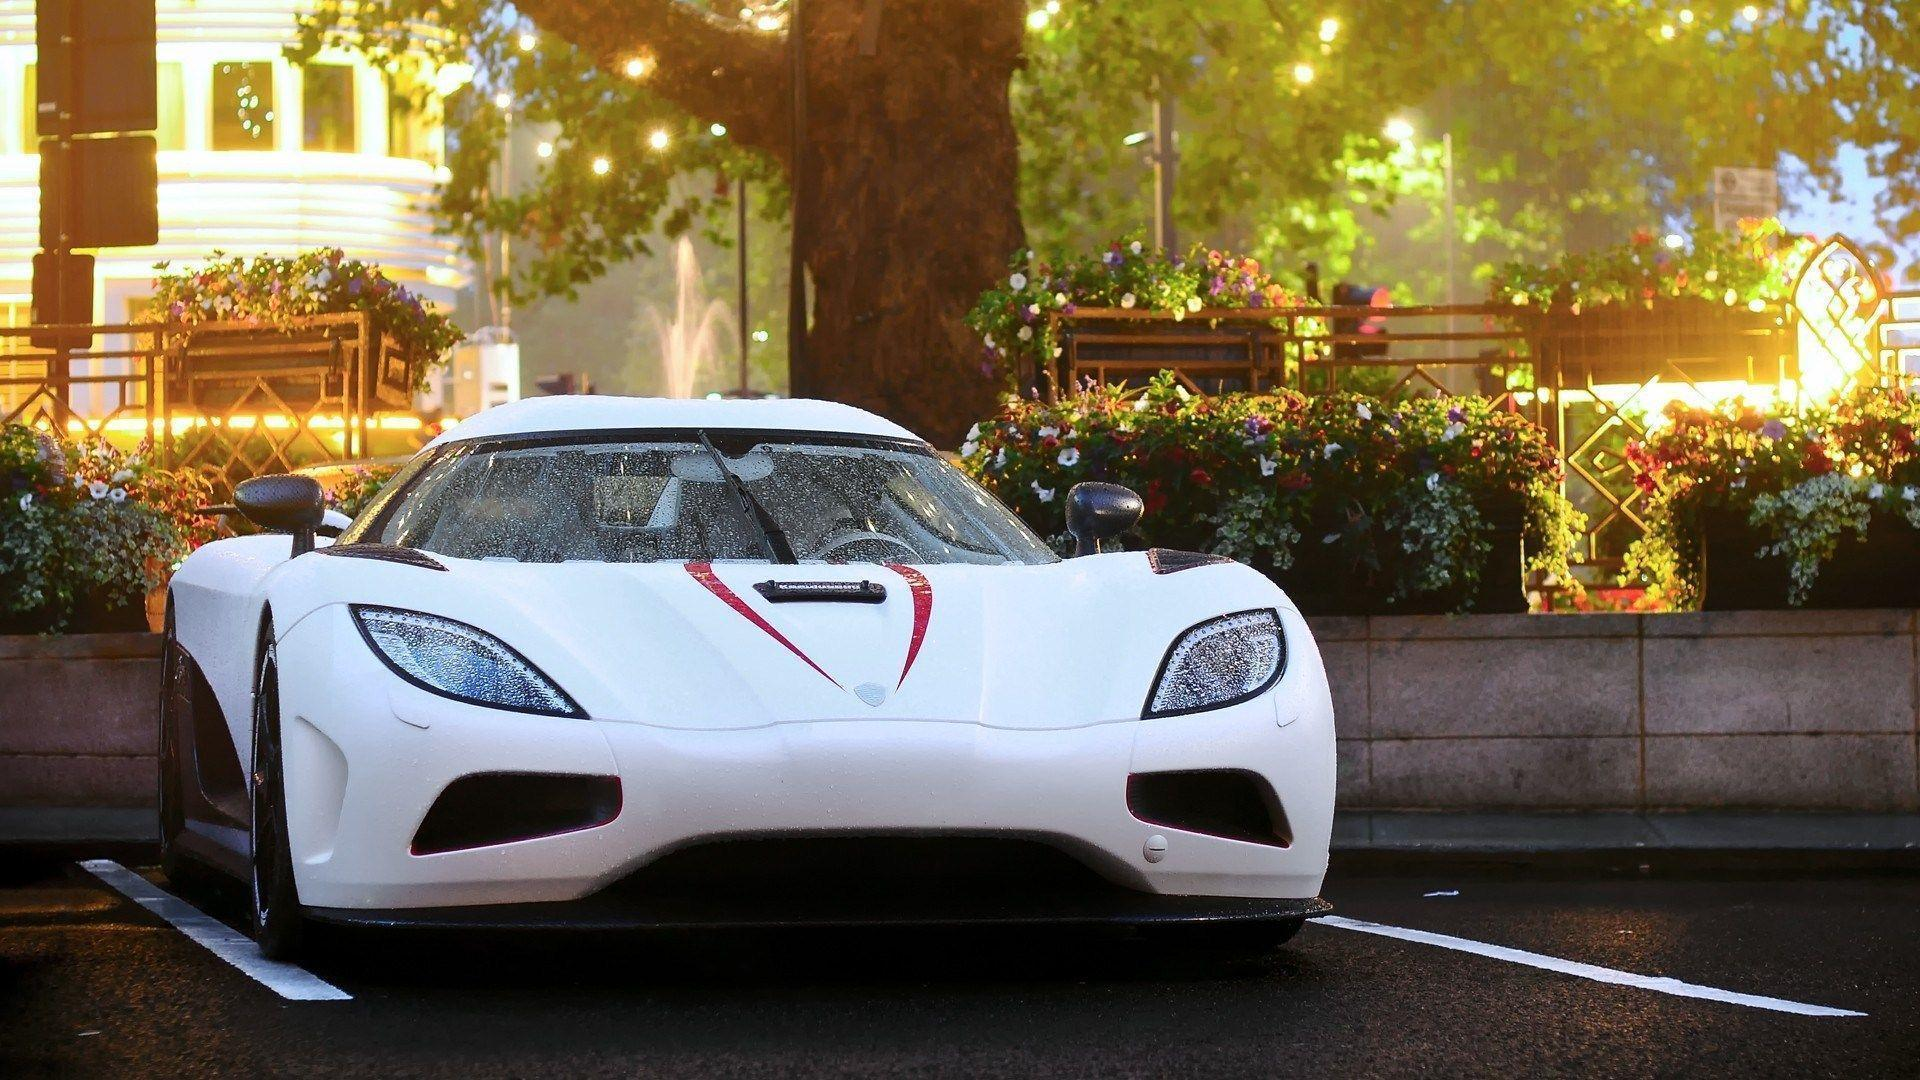 download koenigsegg car hd wallpapers : Tracksbrewpubbrampton